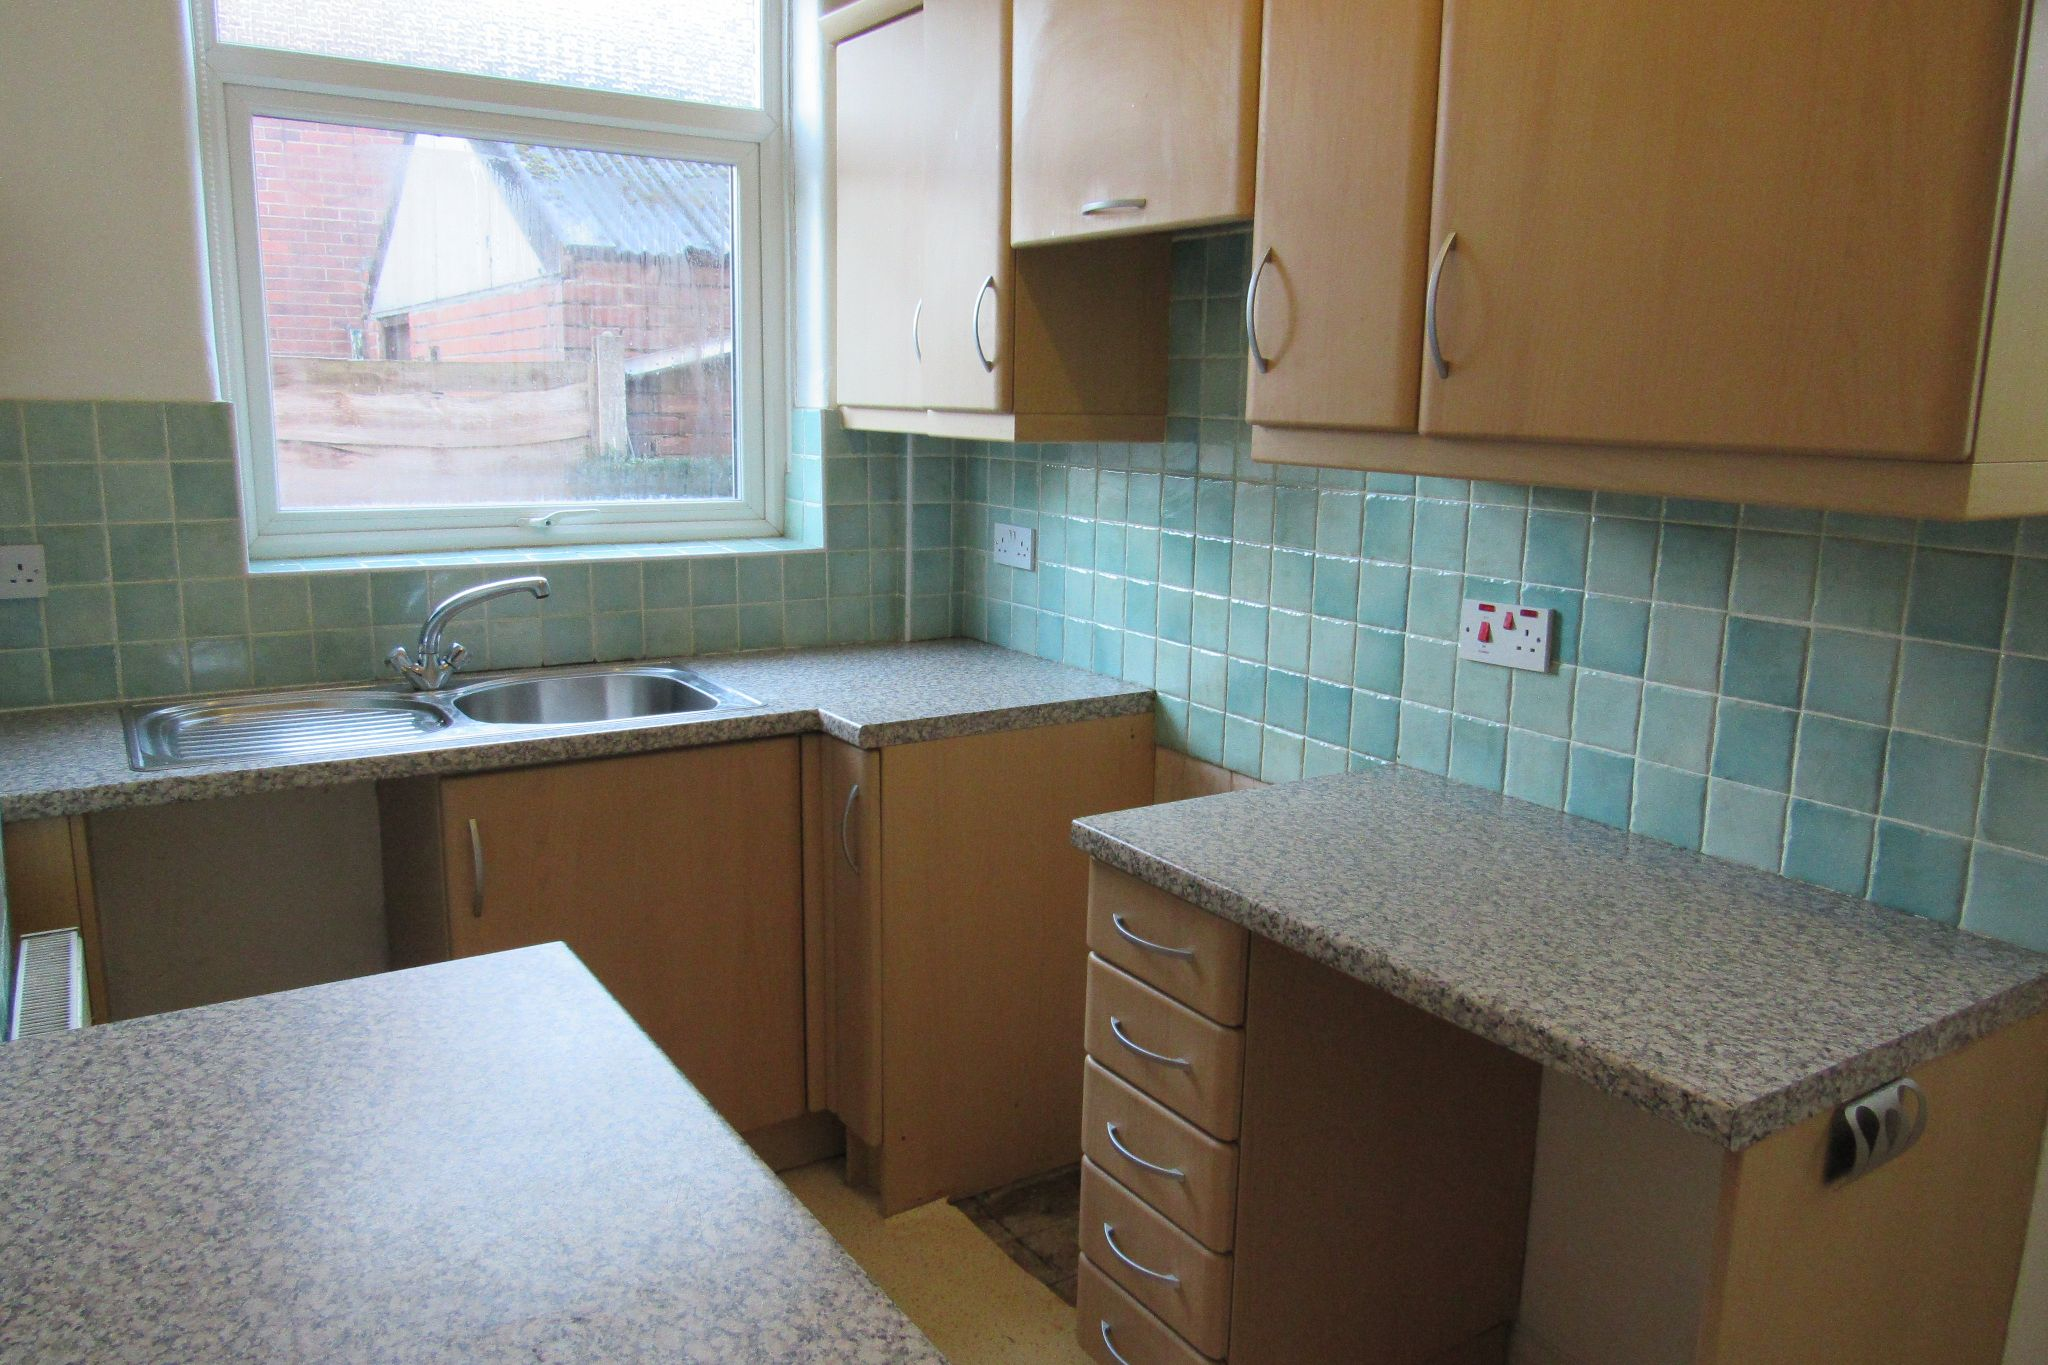 3 bedroom semi-detached house For Sale in Manchester - Photograph 13.